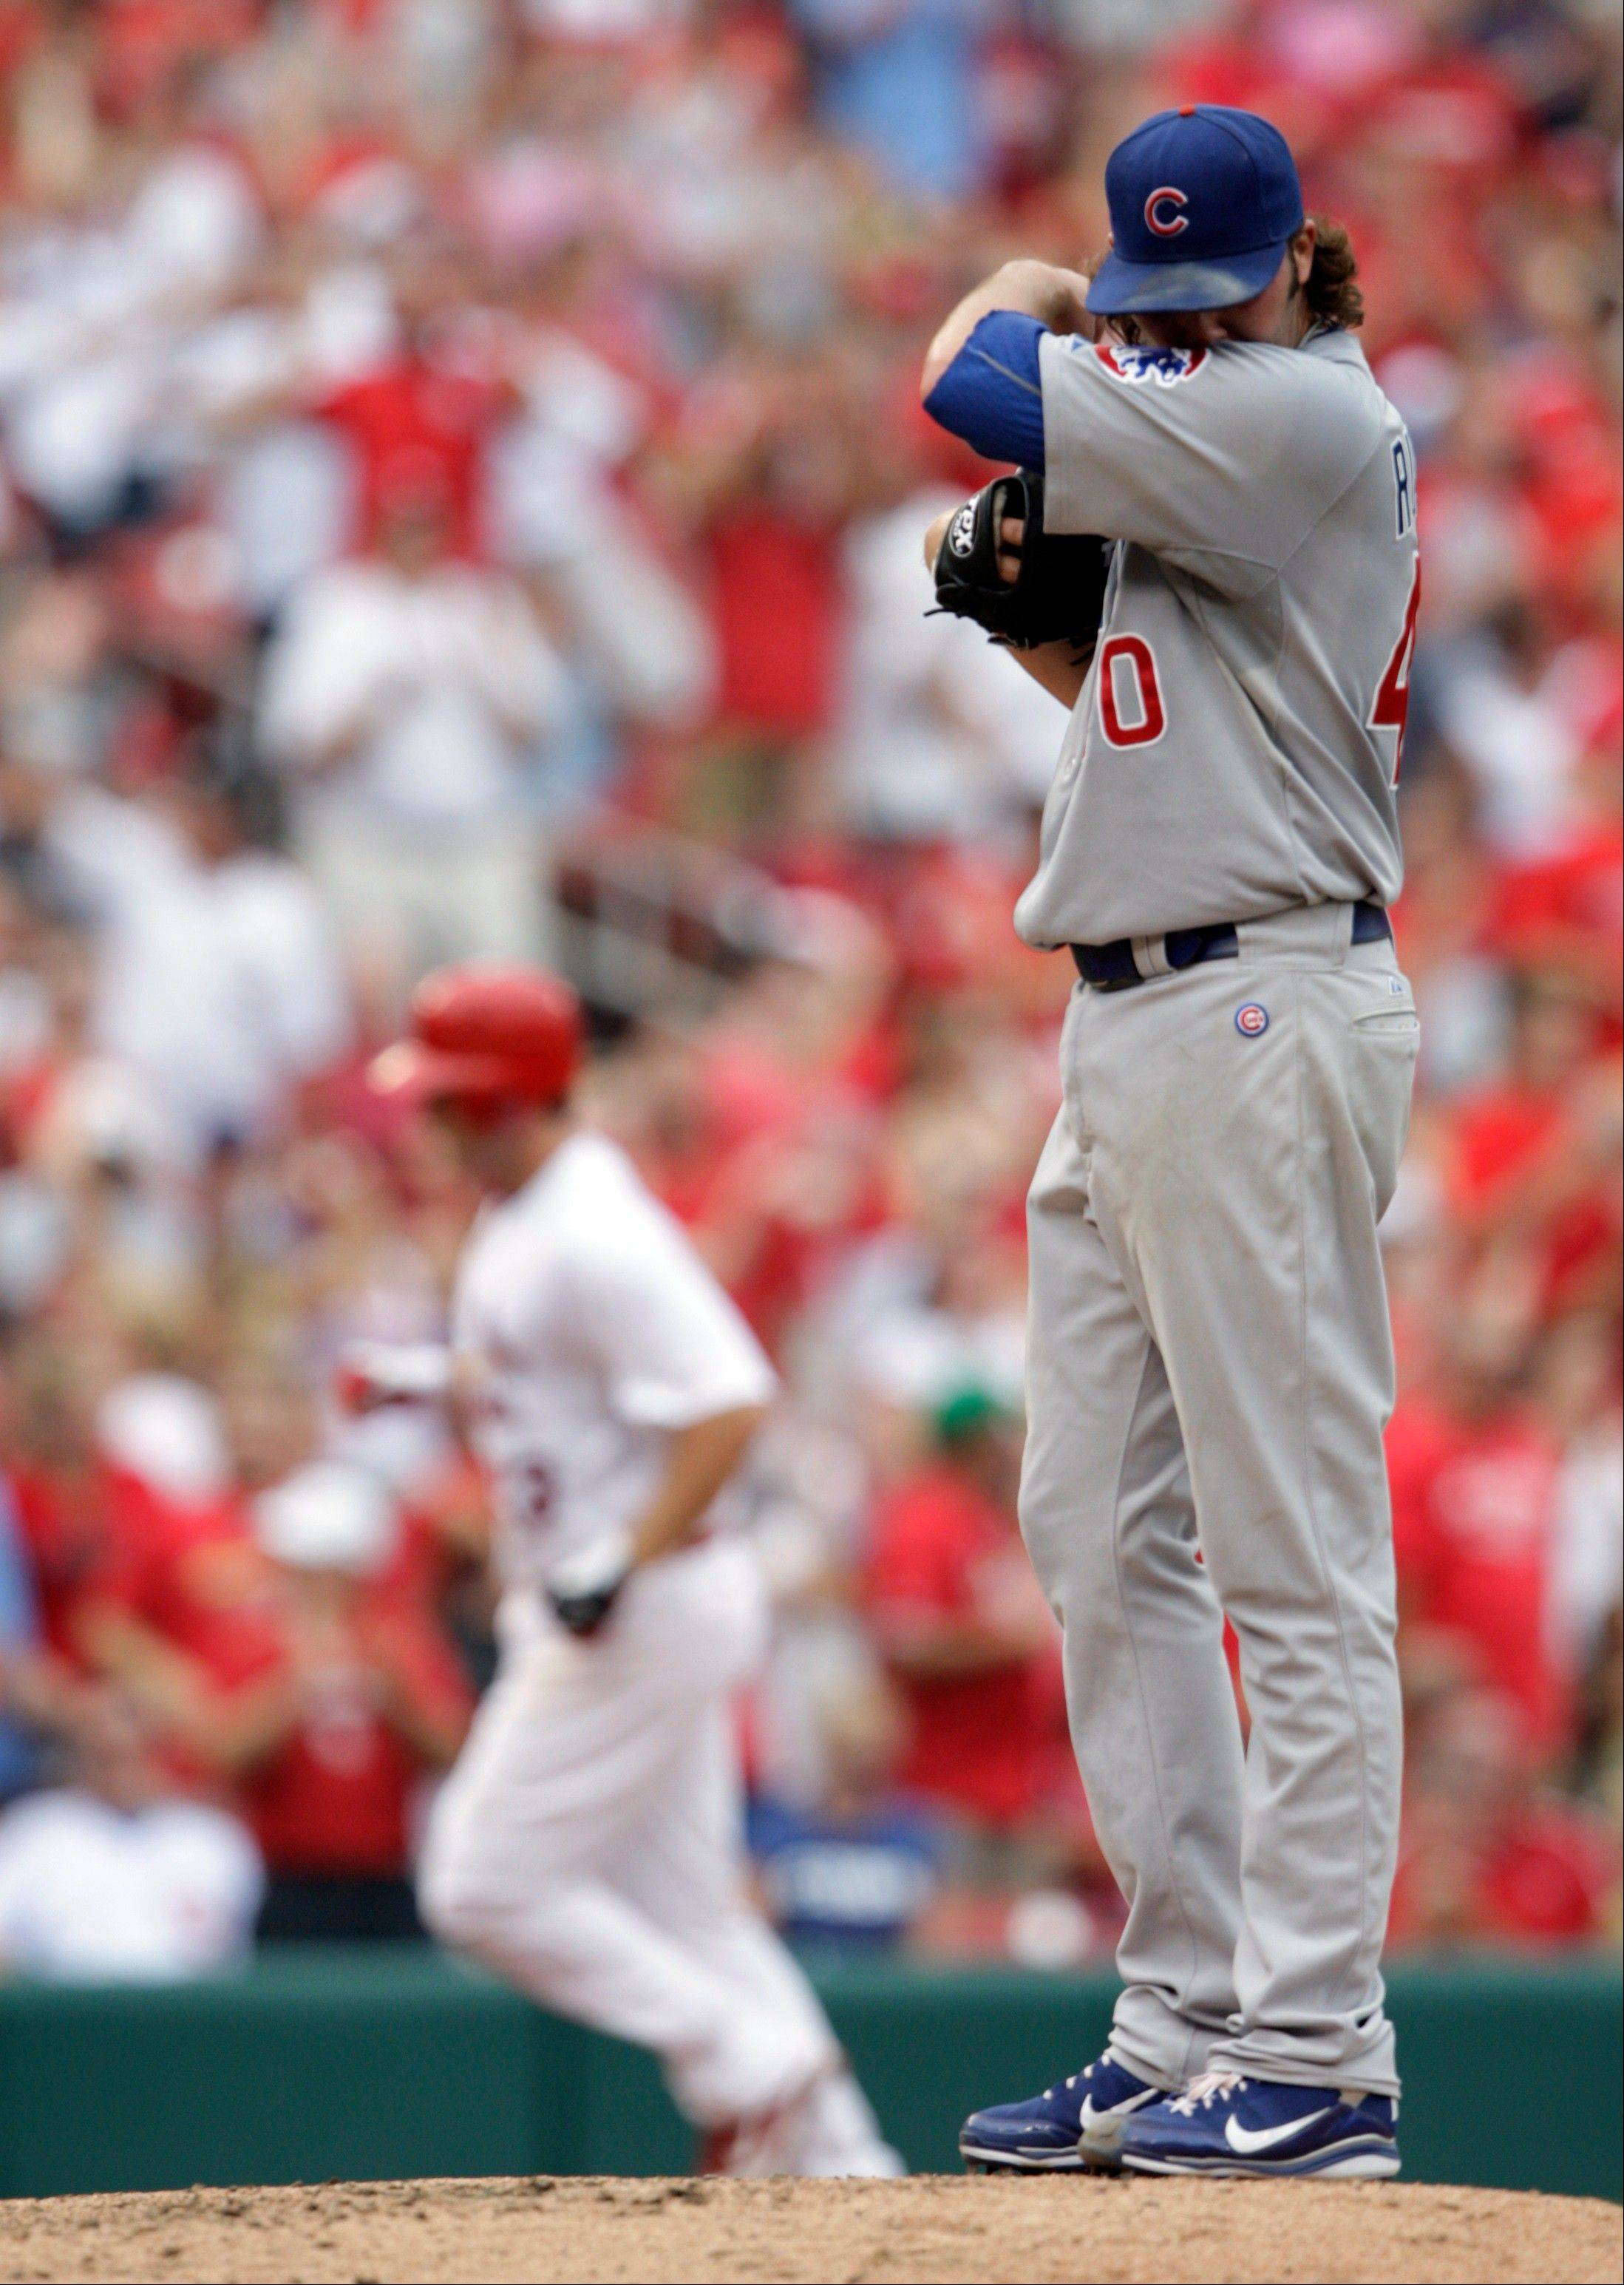 Cubs relief pitcher James Russell looks away as the Cardinals� David Freese circles the bases after hitting a 2-run homer Saturday.